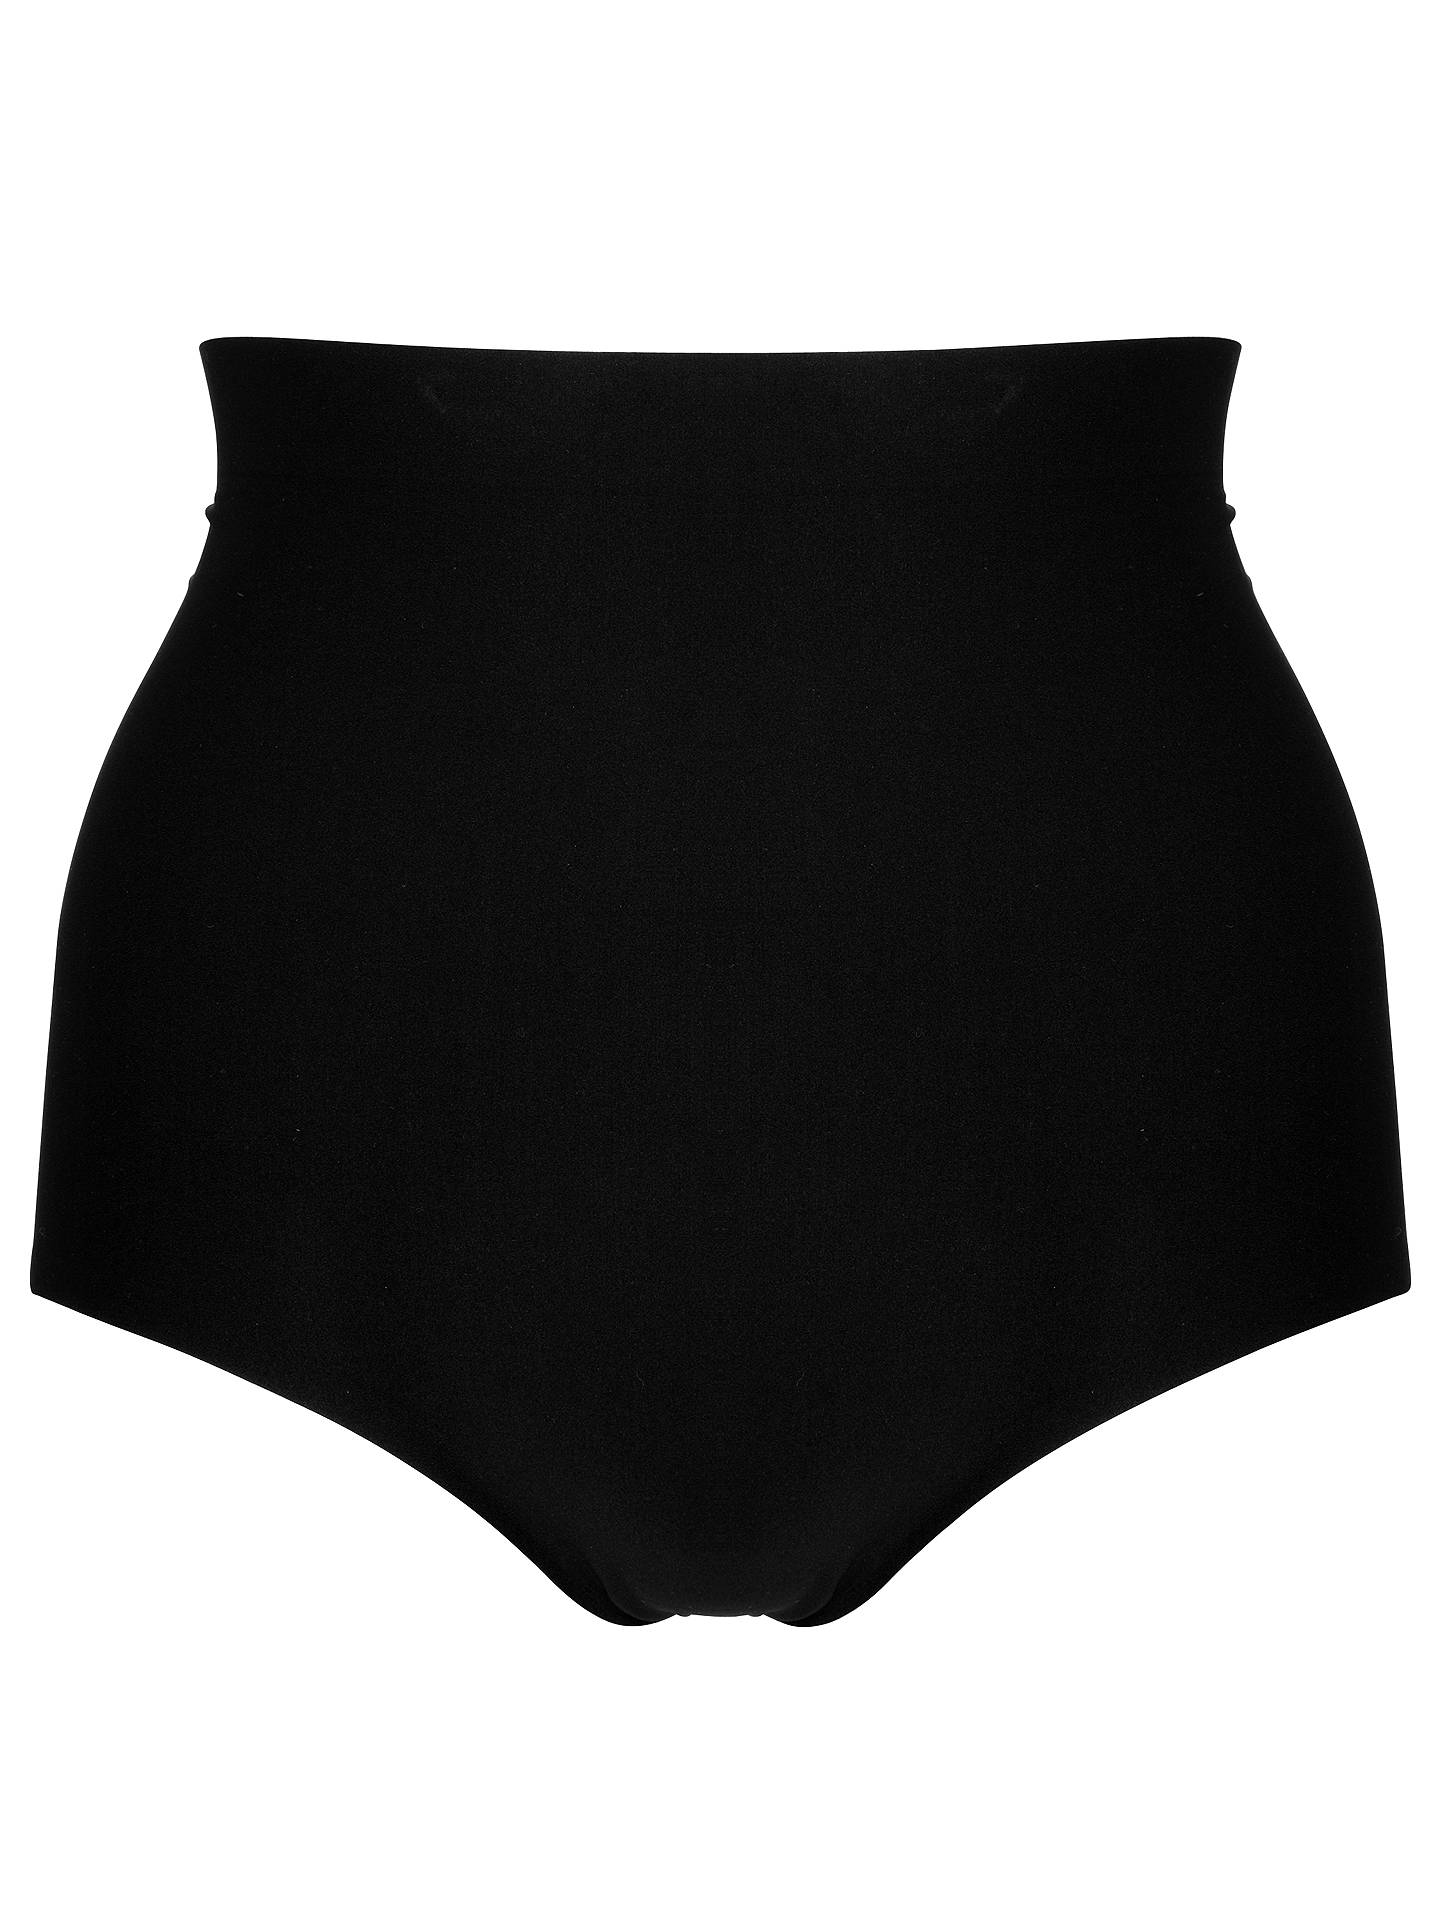 Buy John Lewis & Partners Light Control High Waist Briefs, Black, 8 Online at johnlewis.com